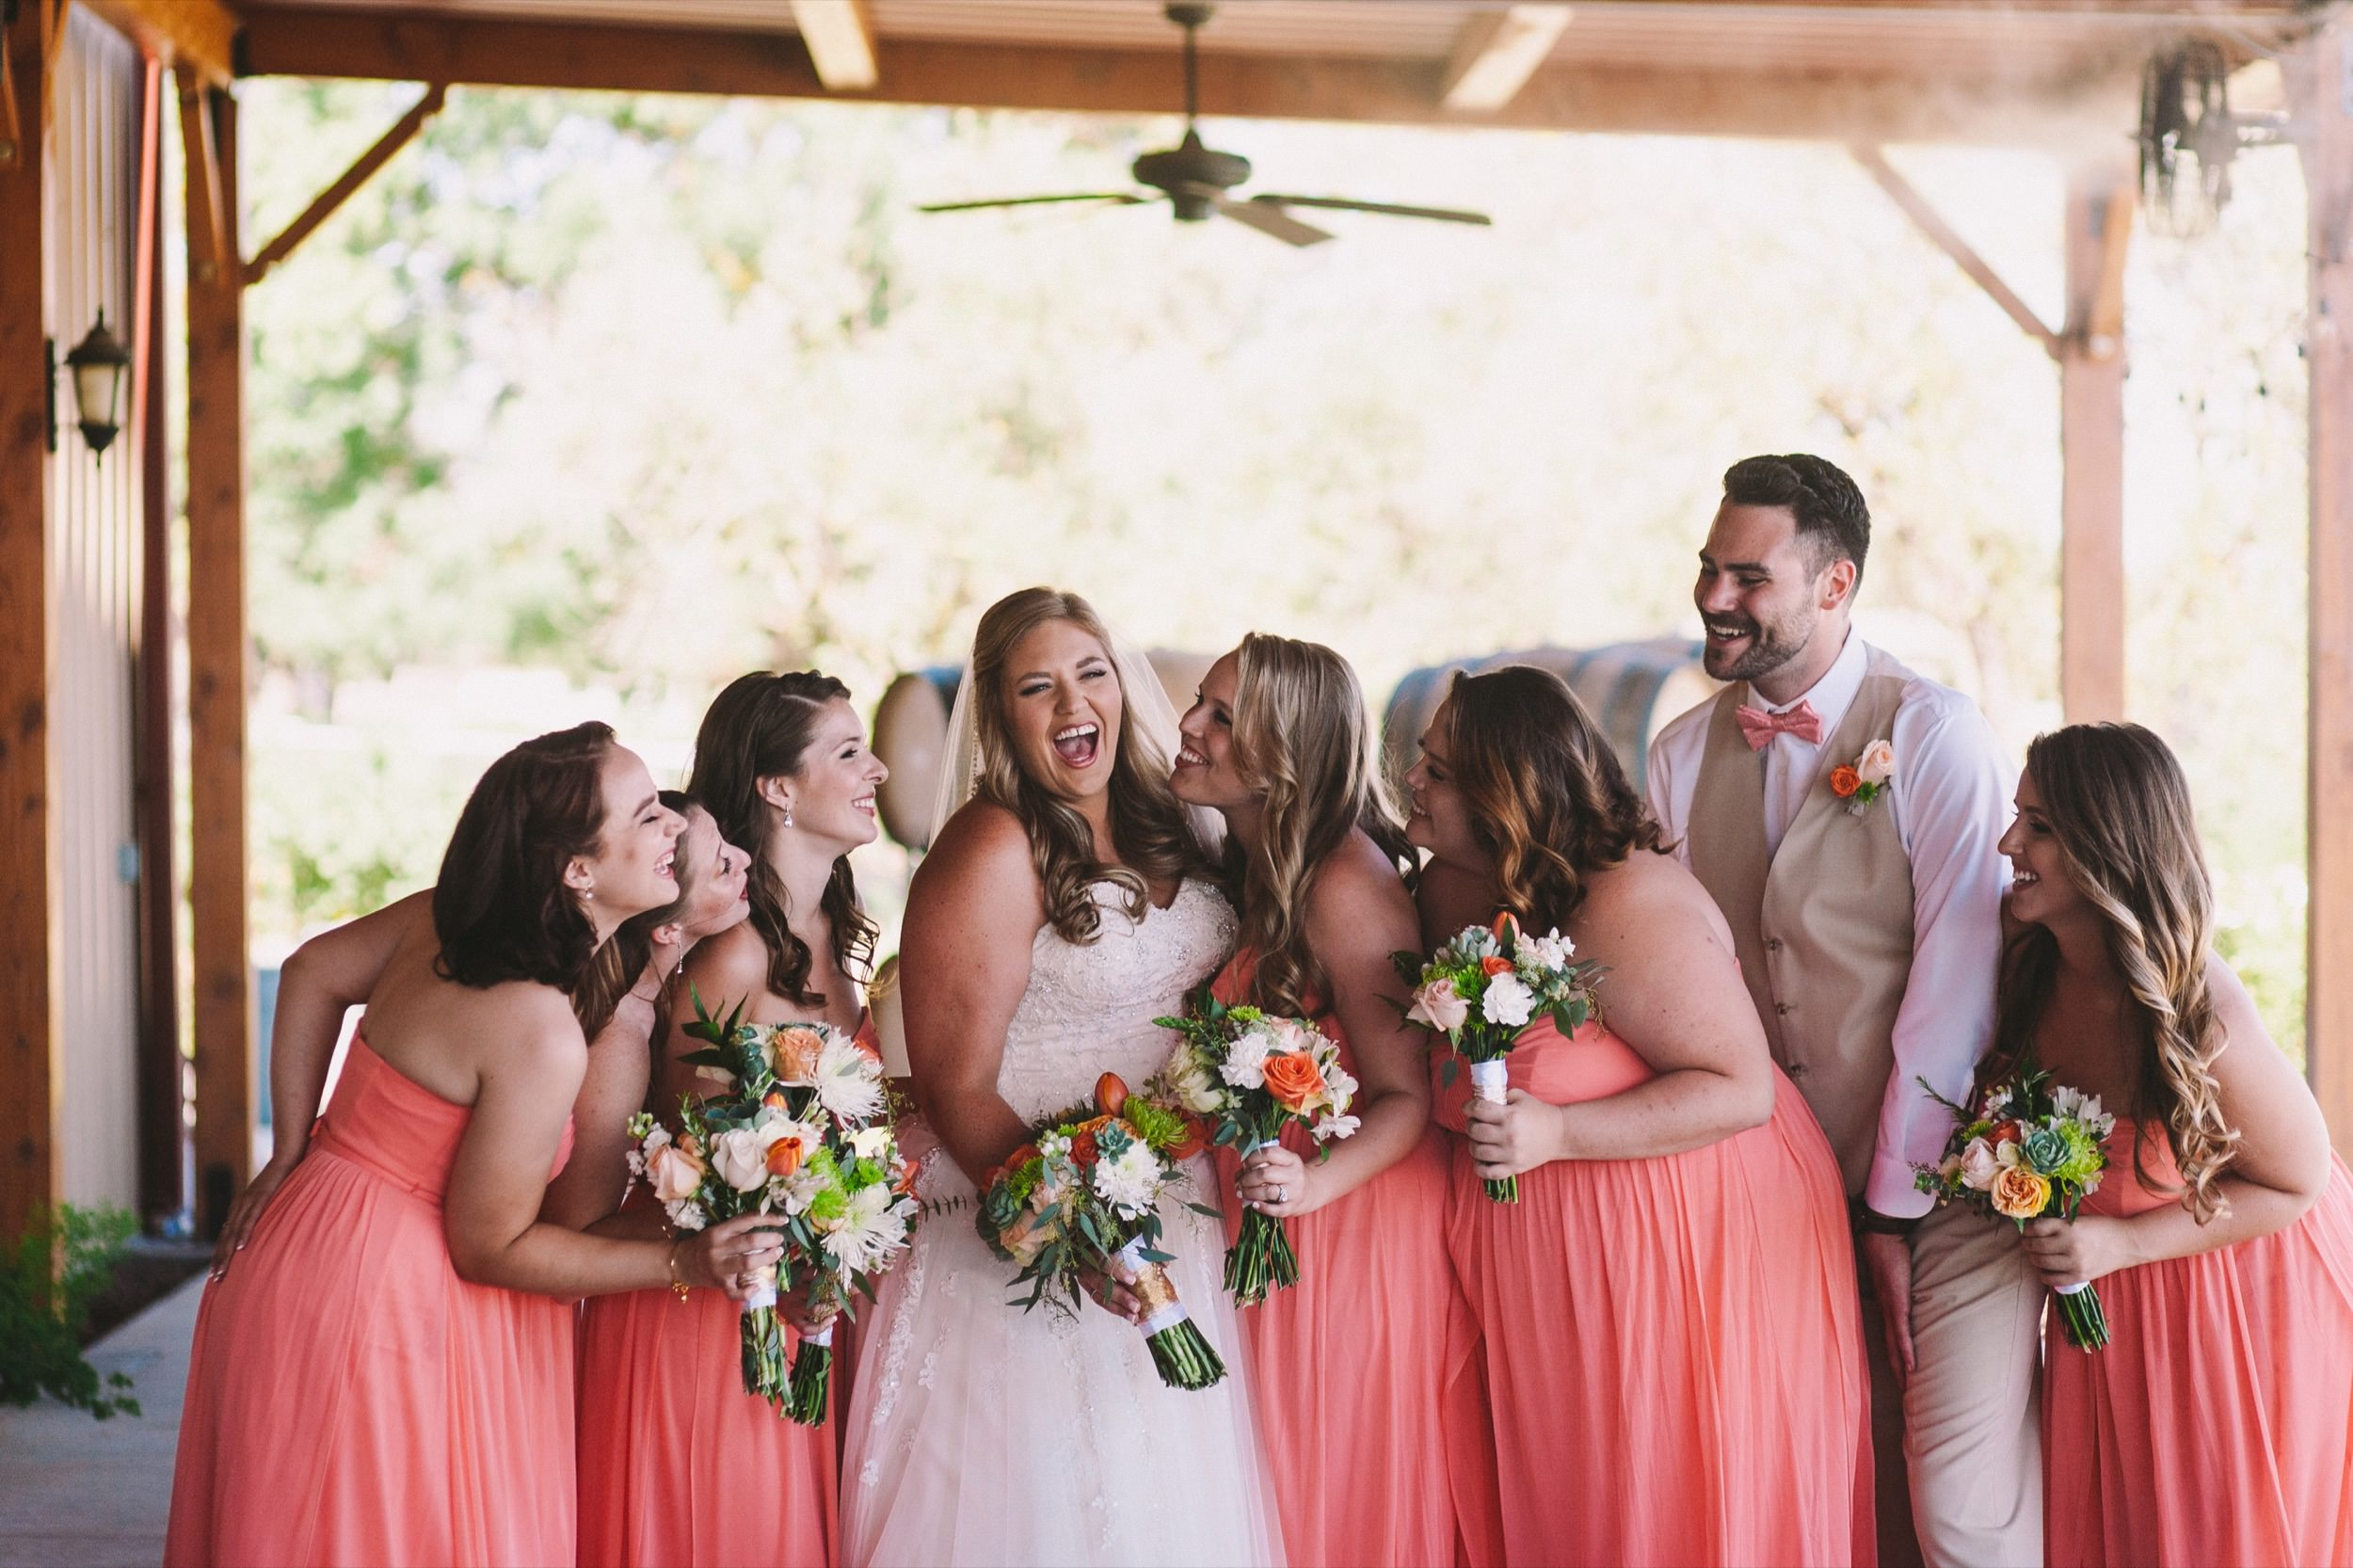 Colorful Bridal Group Shot - Bridesmaids in Pink Bridesman in Pink Bowtie Co-ordination